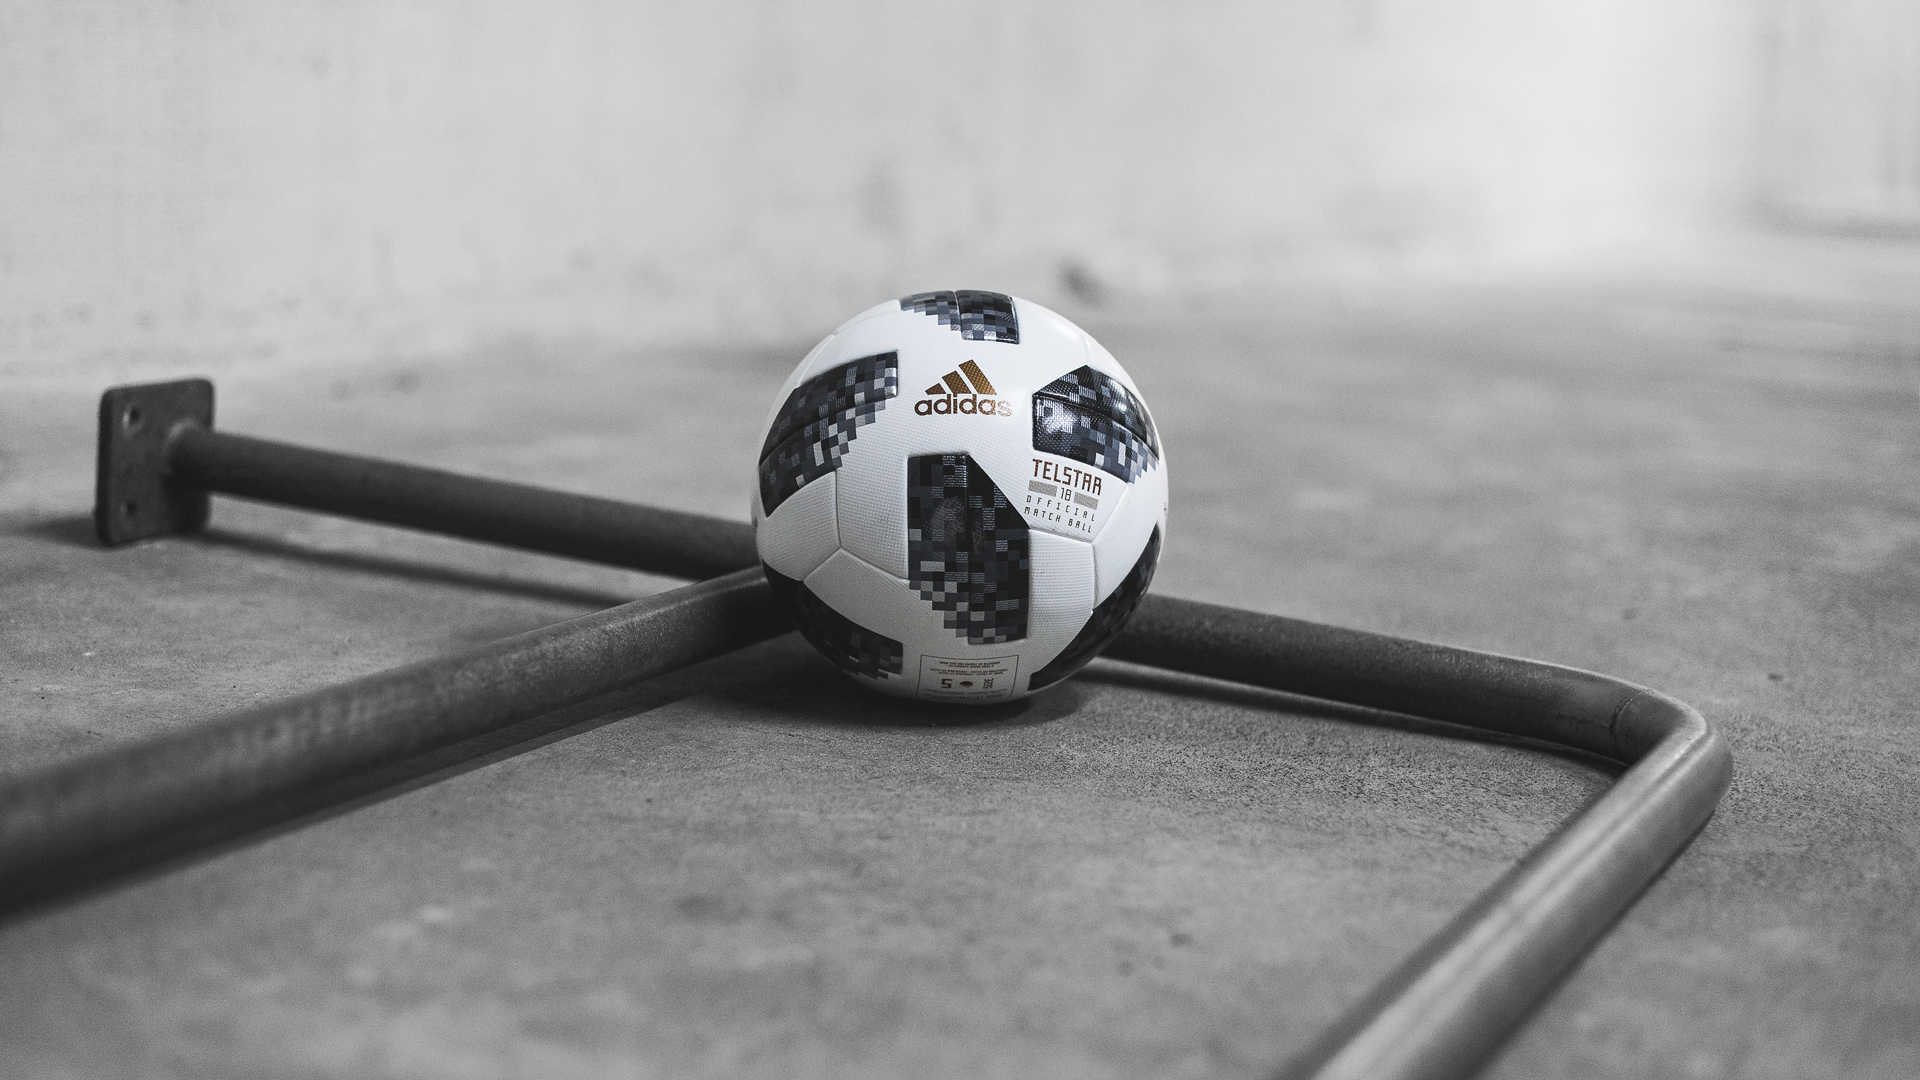 Adidas Reveals The Telstar 18 For The 2018 World Cup